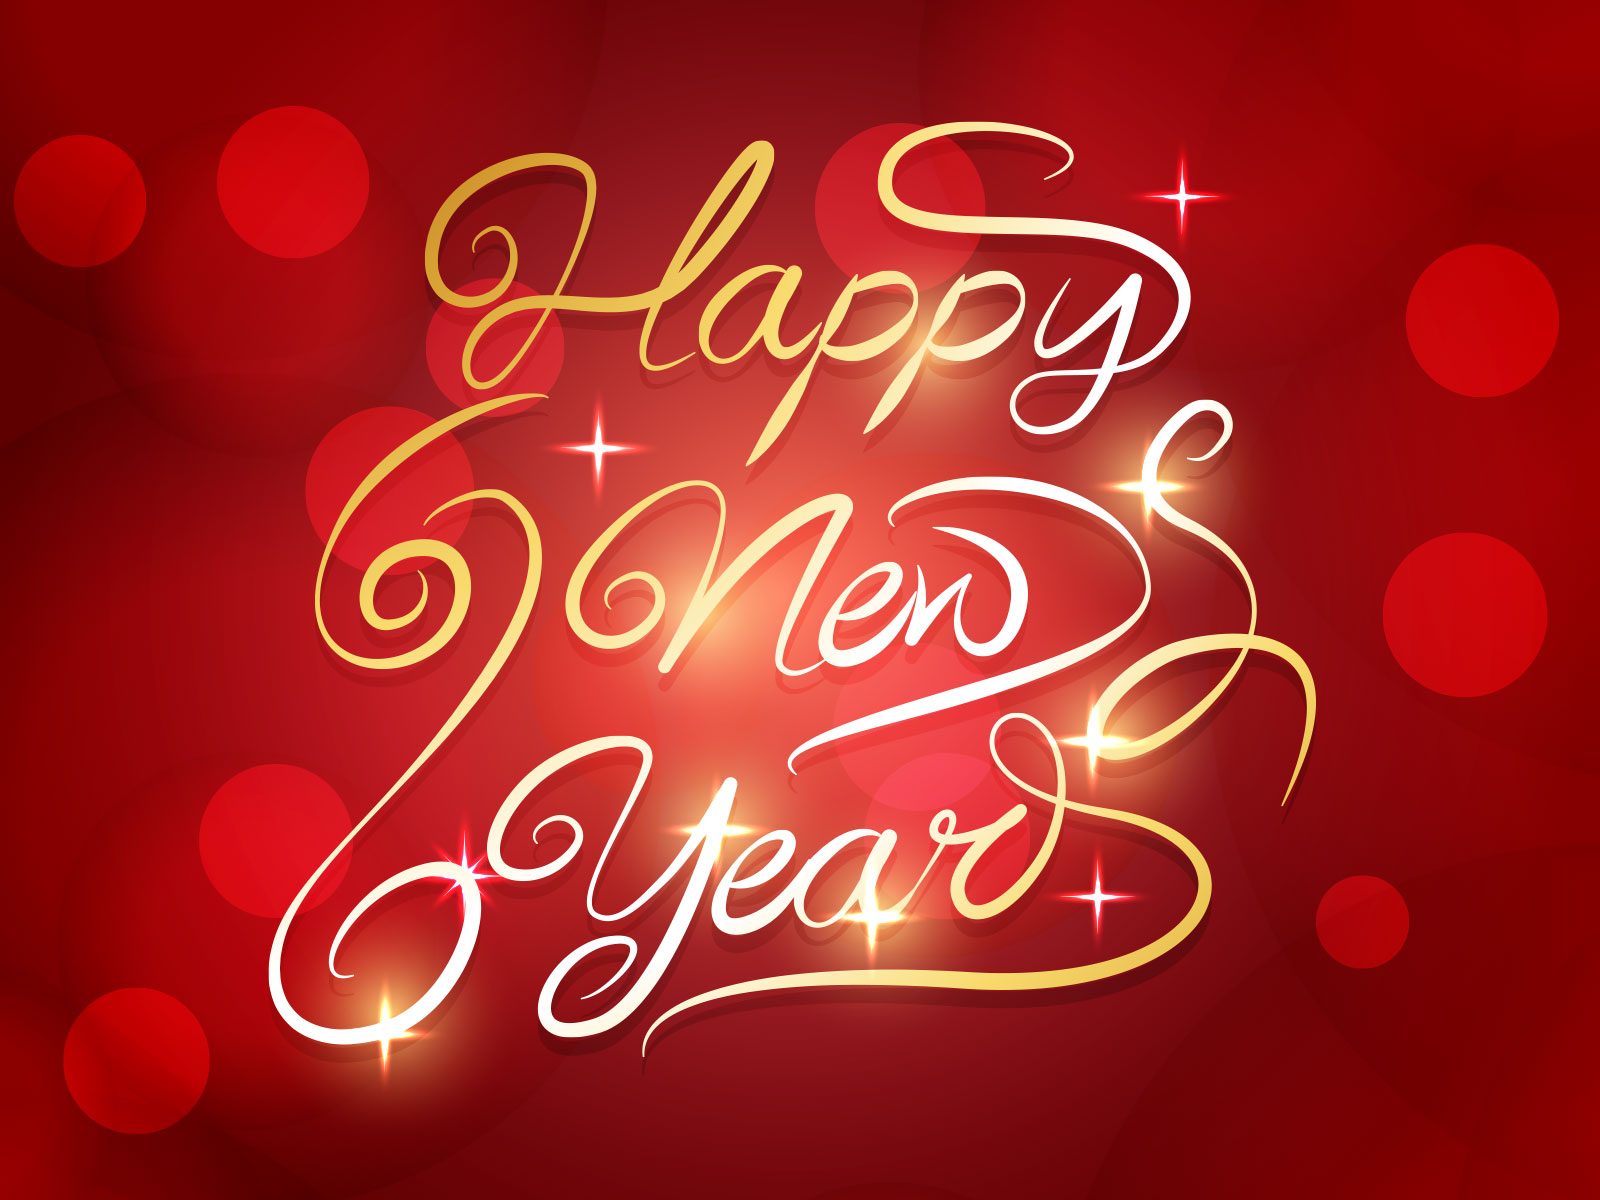 Cool Wallpaper Name Prashanth - Happy_New_Year_2015_Photo_HD  Picture_489688.jpg